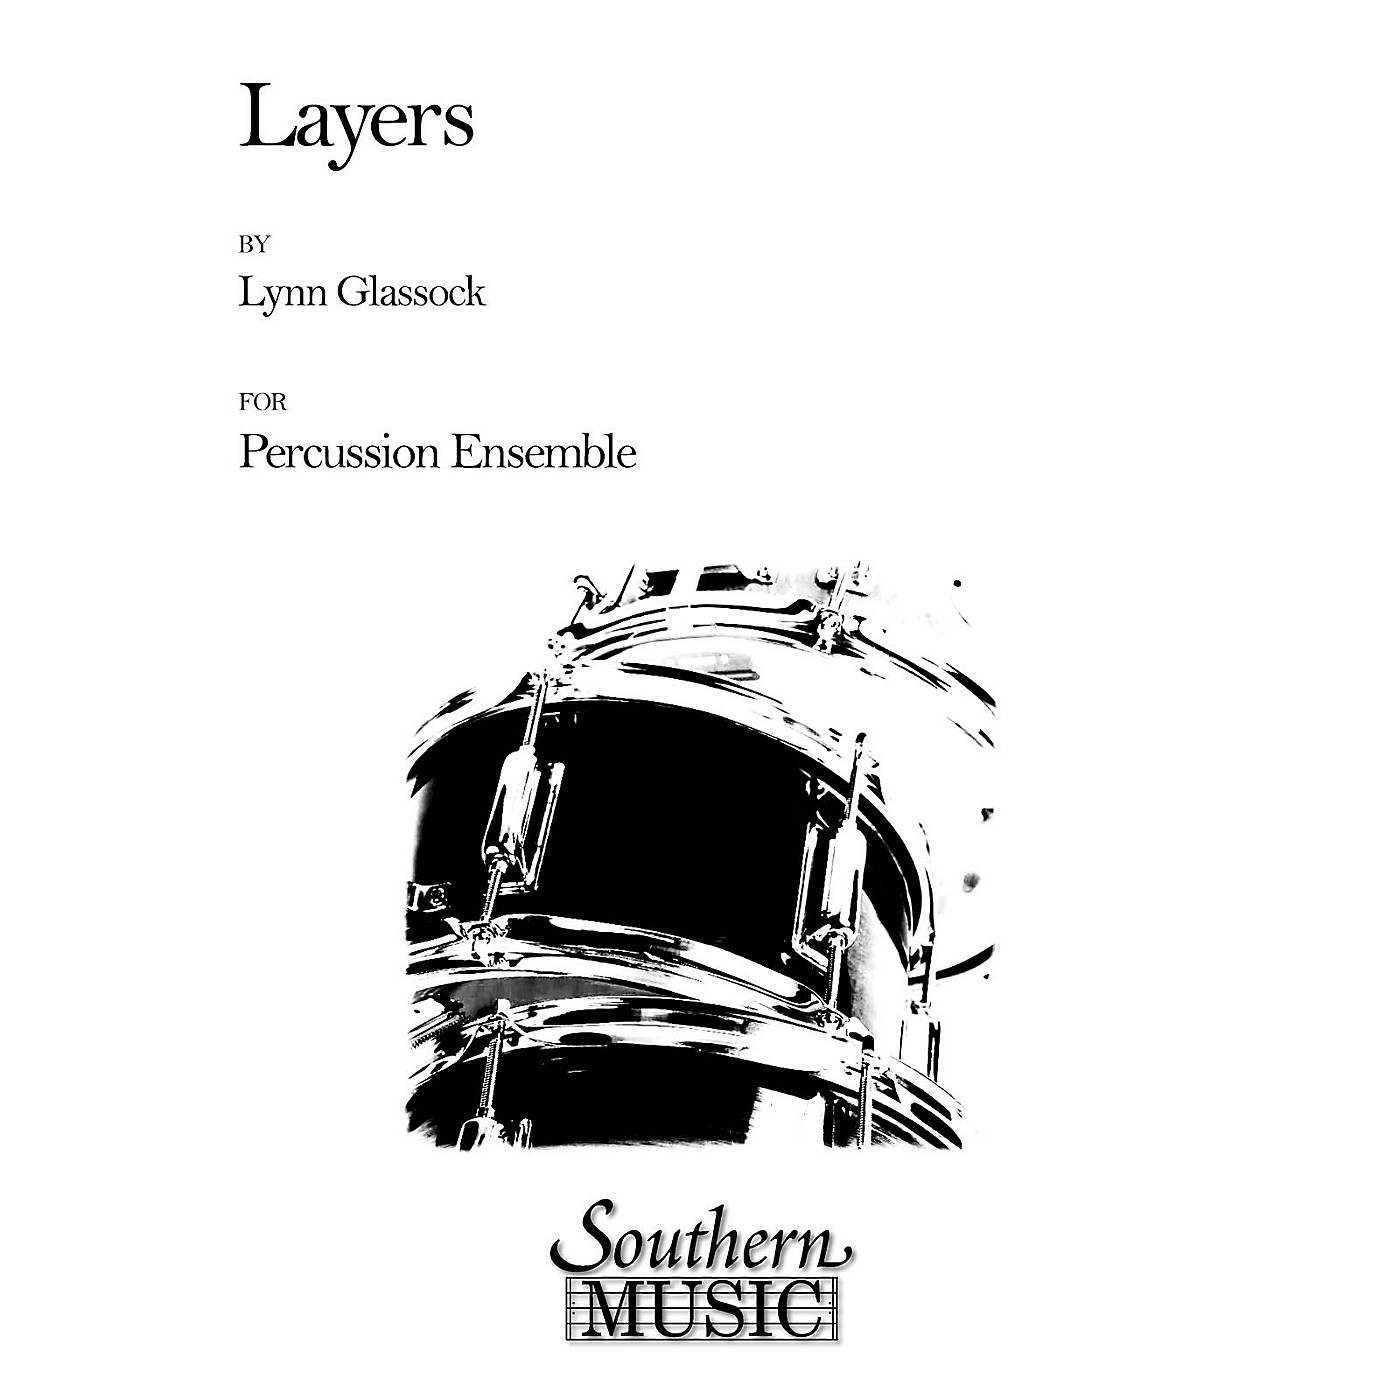 Hal Leonard Layers (Percussion Music/Percussion Ensembles) Southern Music Series Composed by Glassock, Lynn thumbnail